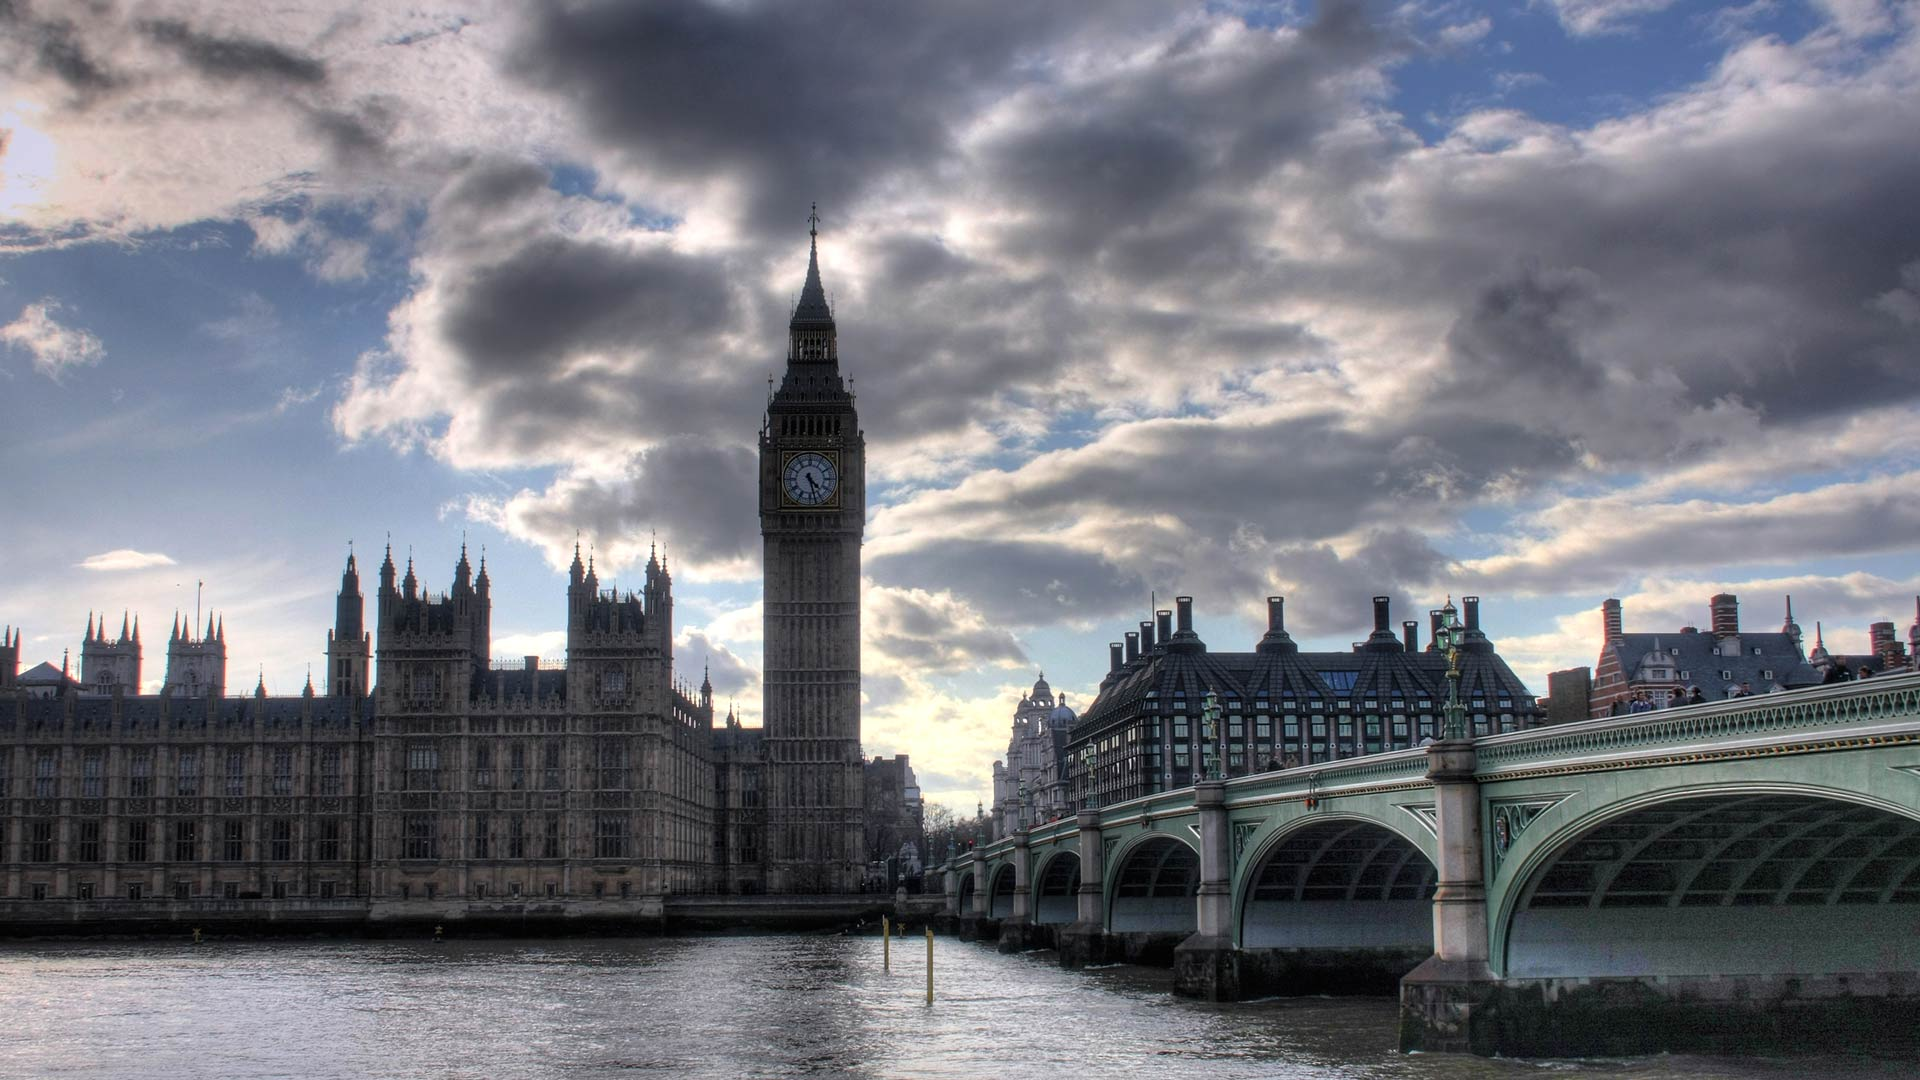 Black and White Landscape Photographs of London Skyline |London Skyline Wallpaper Black White